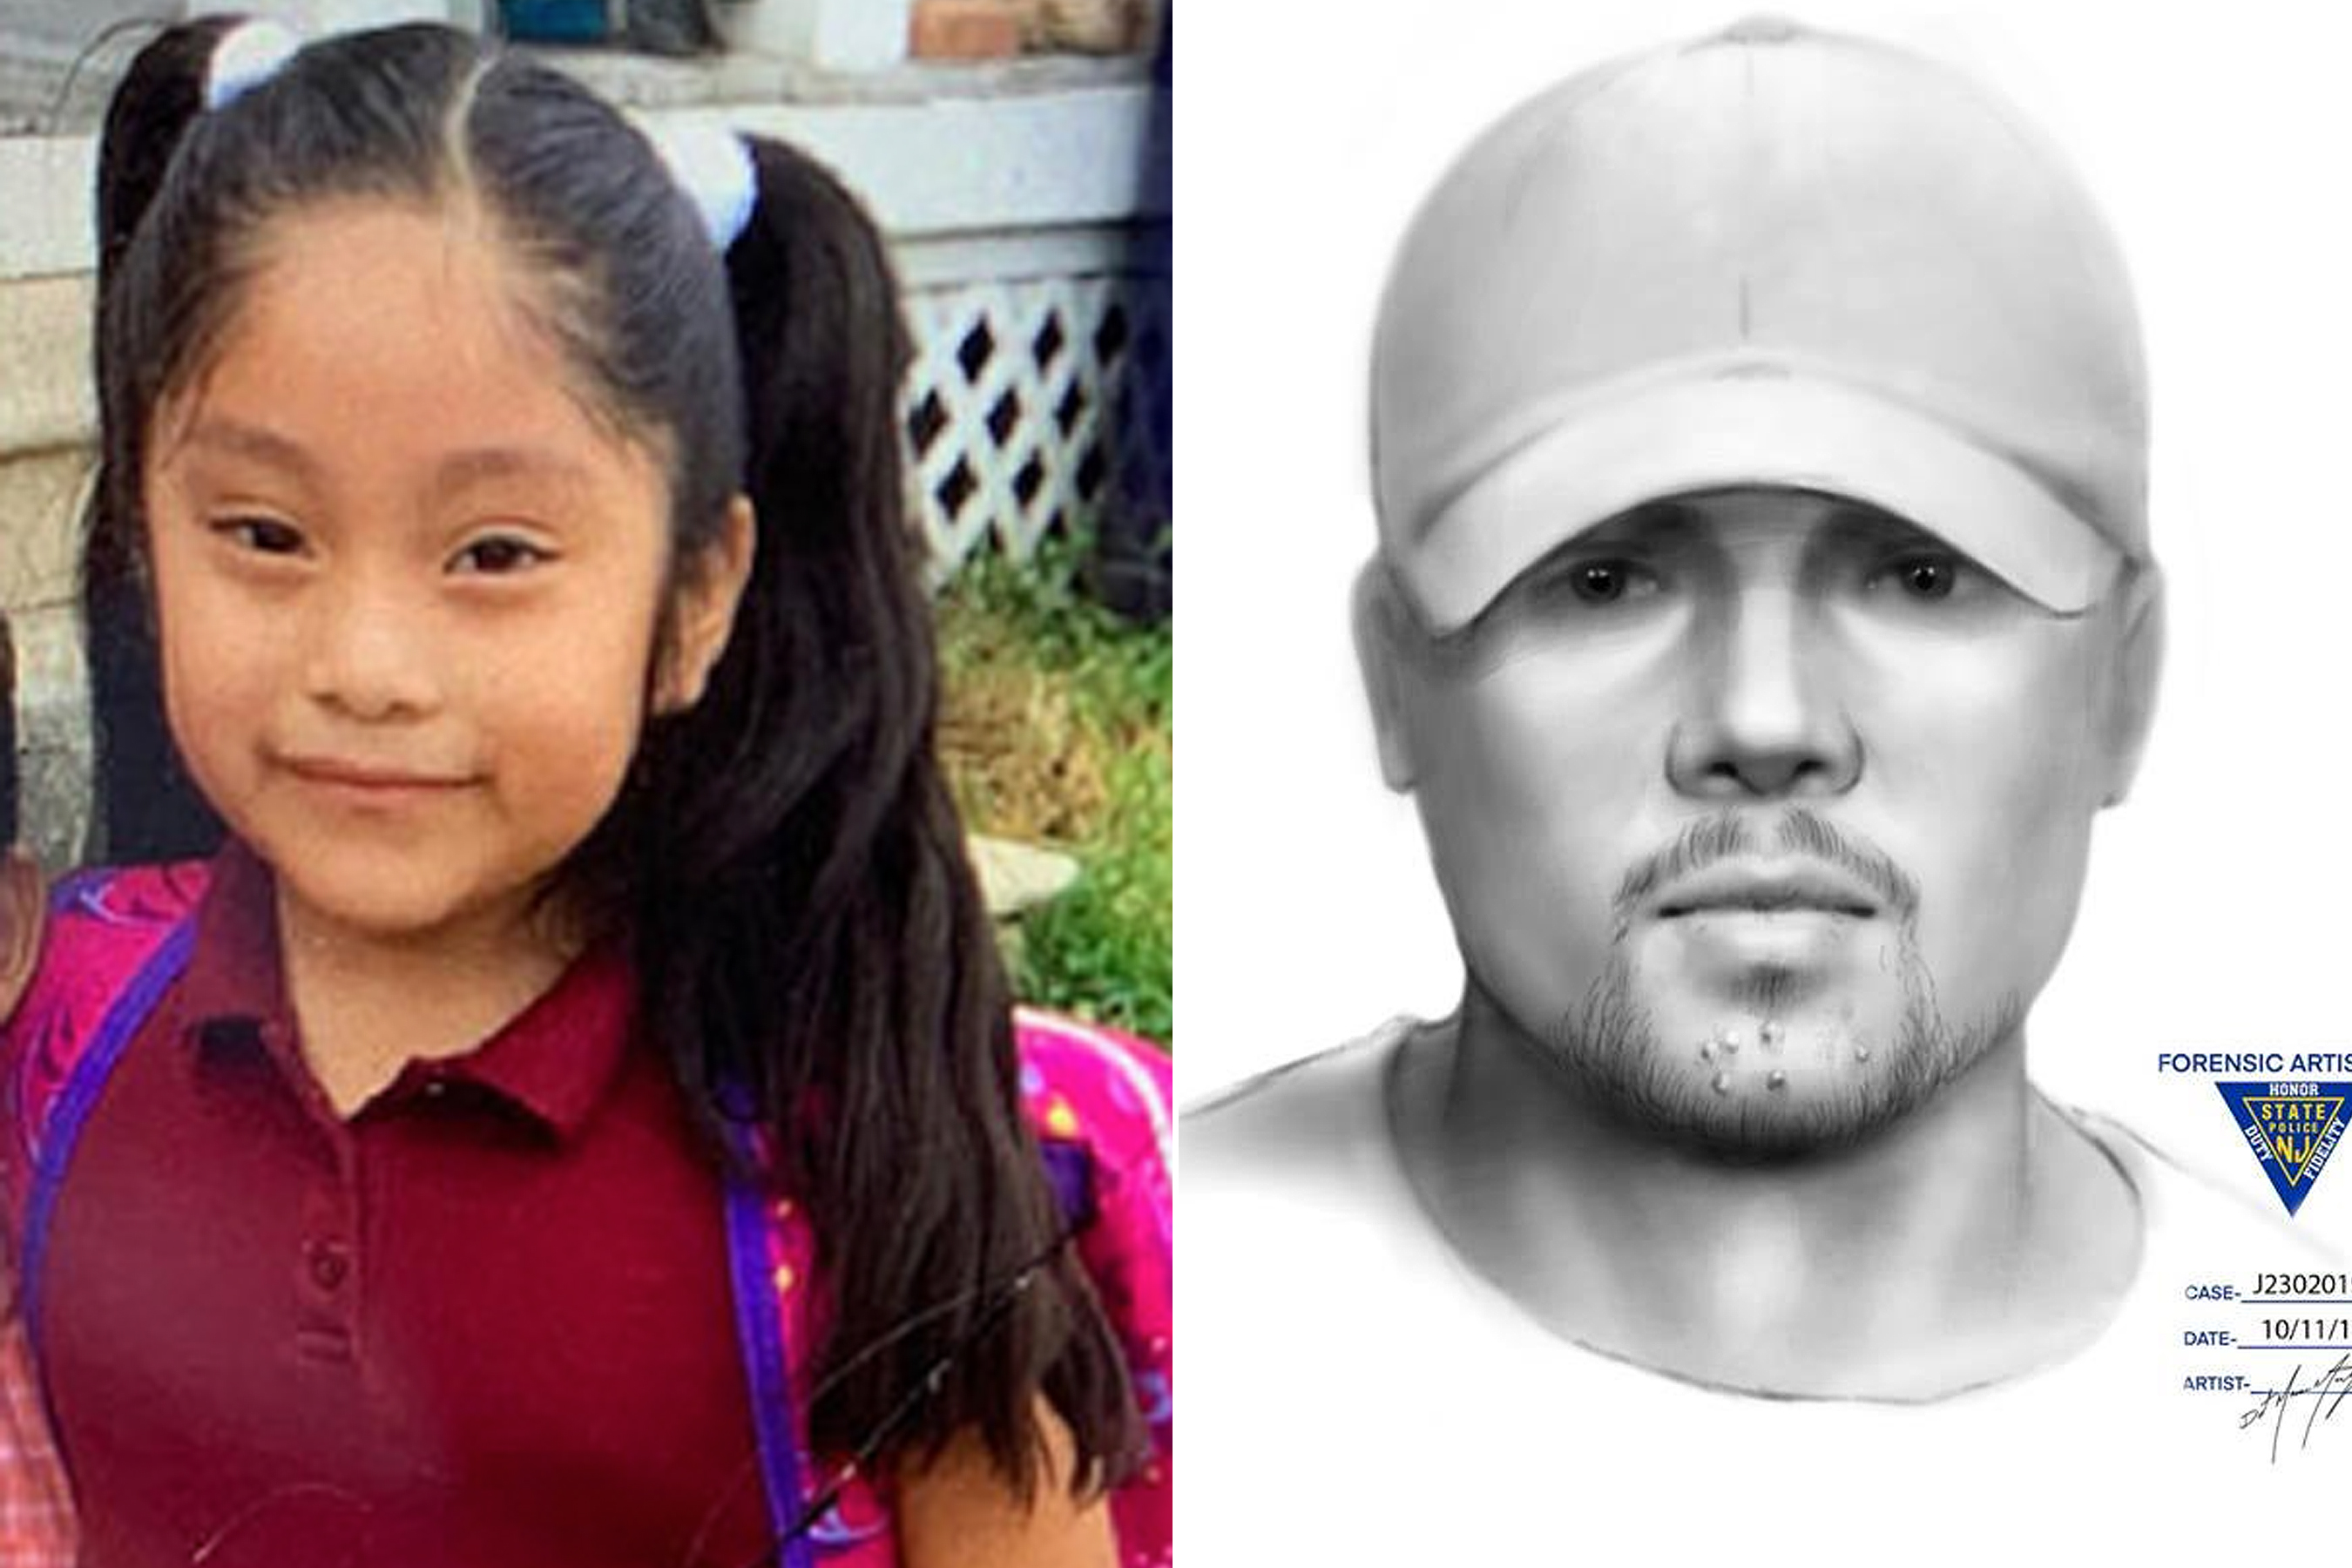 Missing New Jersey girl Dulce Maria Alavez and Kidnapping Suspect Drawing